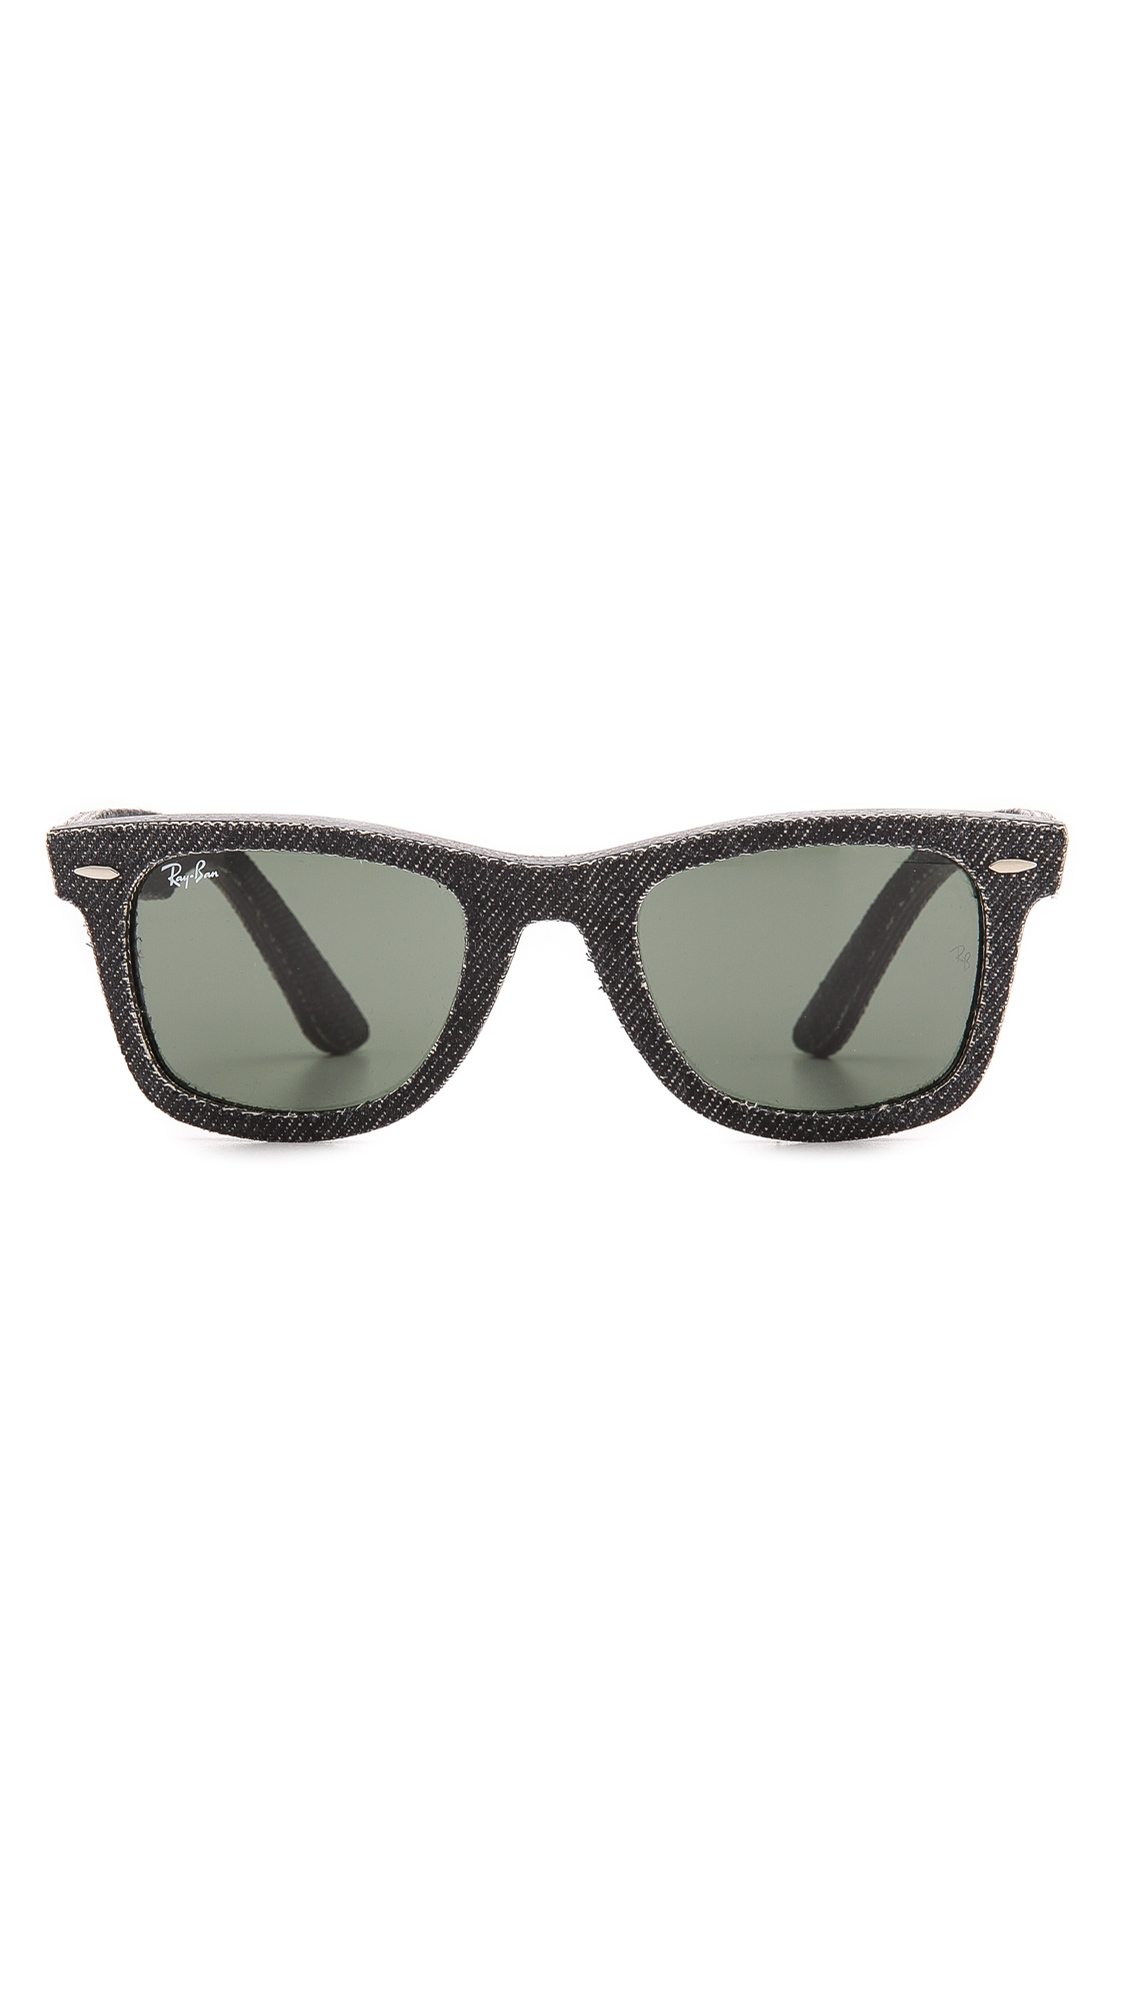 c64423e2d9 Ray-ban Pressed Denim Wayfarer Sunglasses in Black for Men